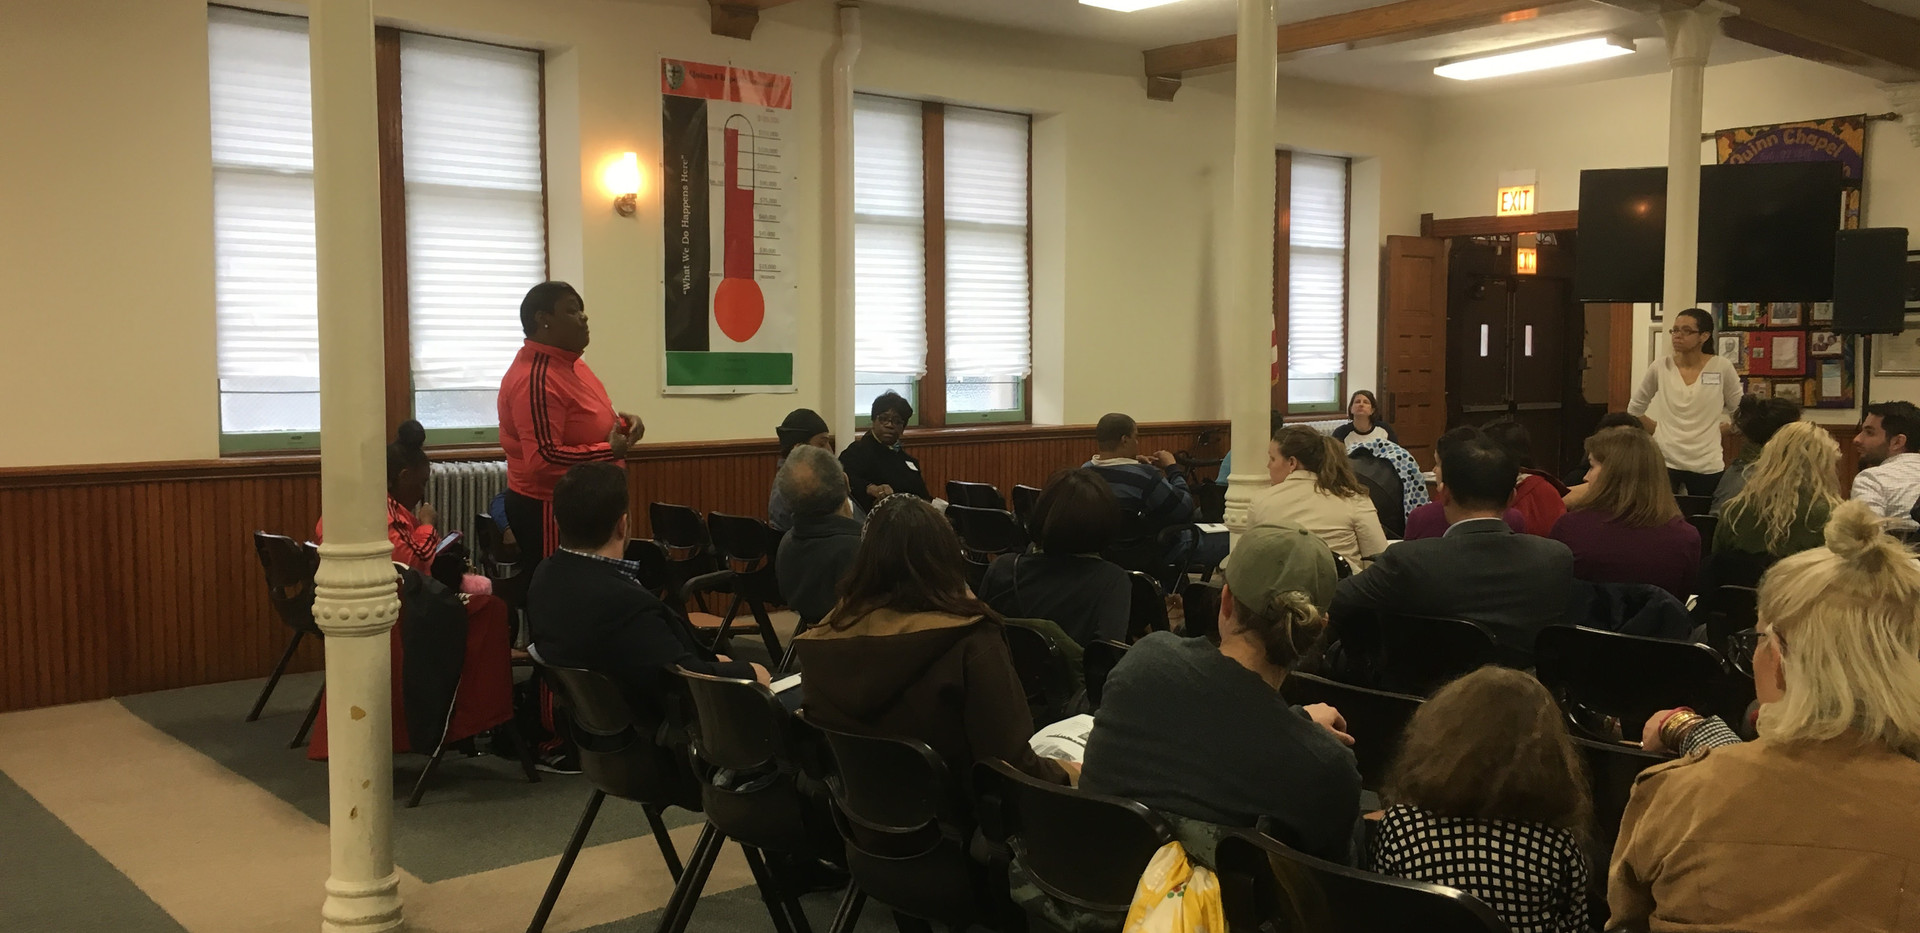 In May 2017, CUE held our first meeting aimed at connecting NTA families to citywide racial justice advocates. Here, NTA parent Audrey Johnson tells the story of NTA.